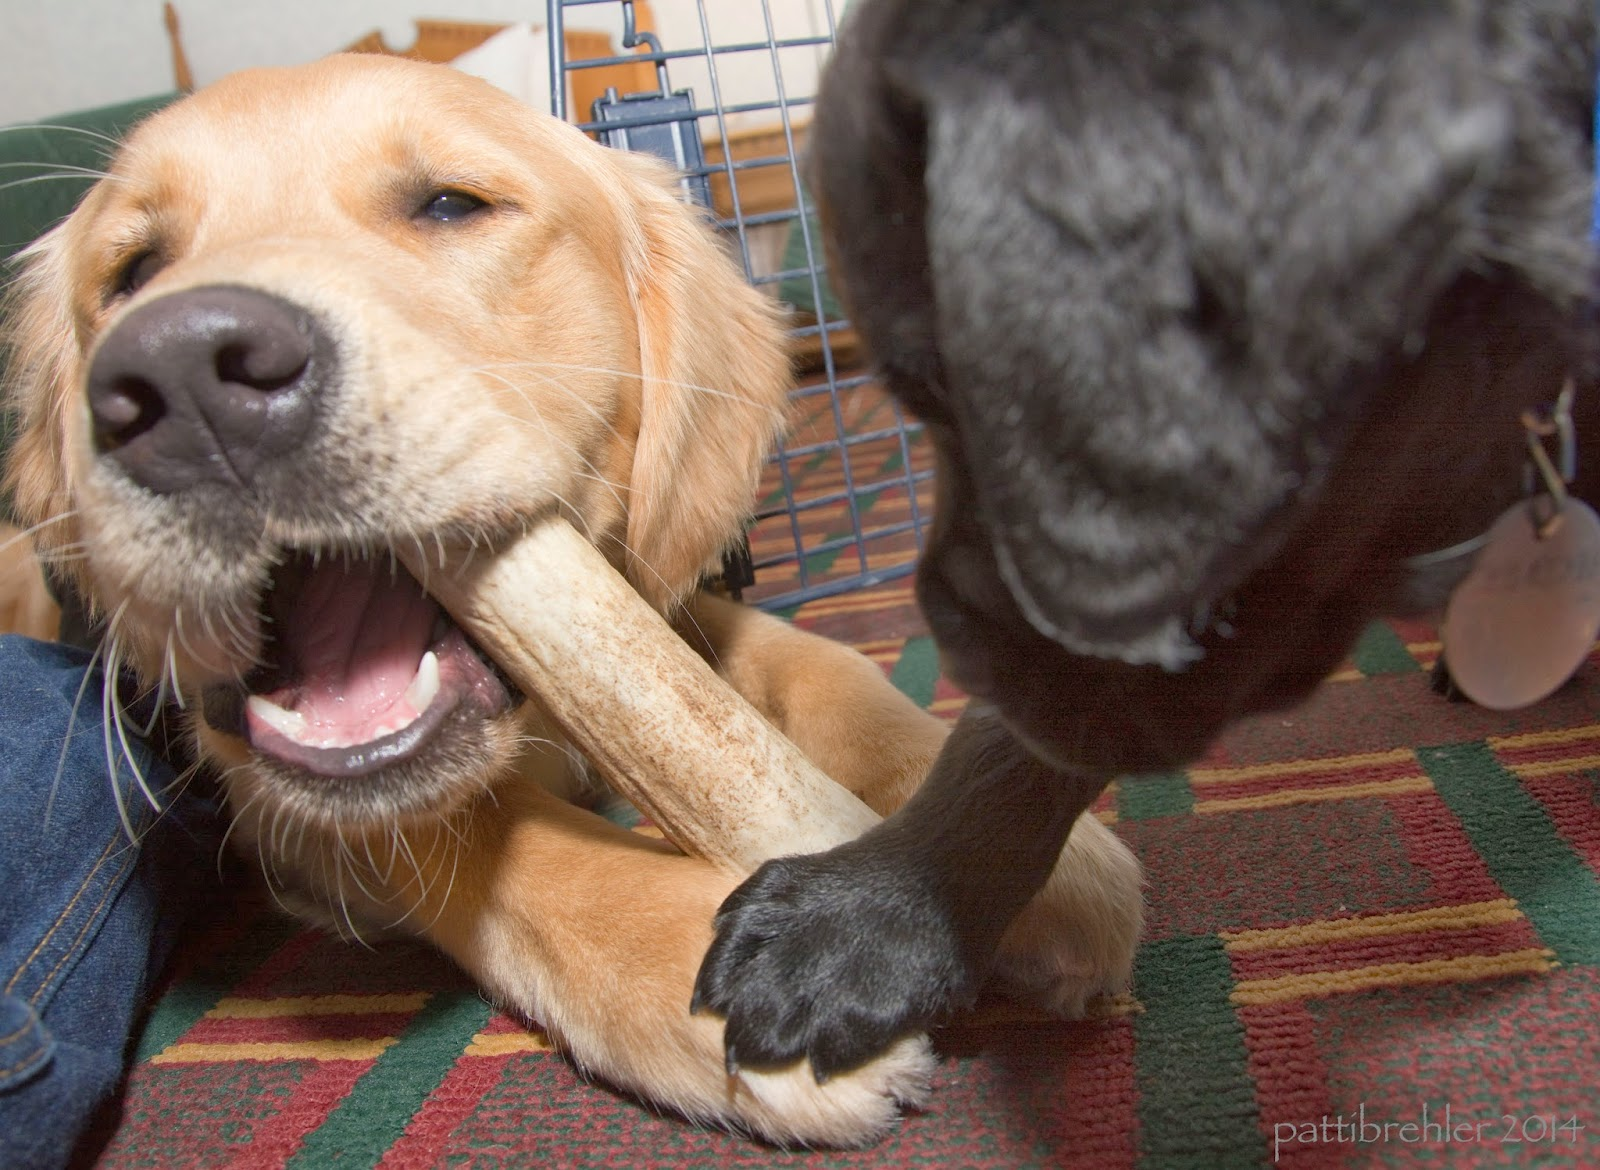 A close up shot taken from floor level of a golden retriever puppy (on the left) chewing an elk antler held between his paws. The antler is in his open mouth and he is looking at the camera. An out of focus black lab puppy is on the right looking at the antler. He has one front paw resting on the right front paw of the golden retriever.